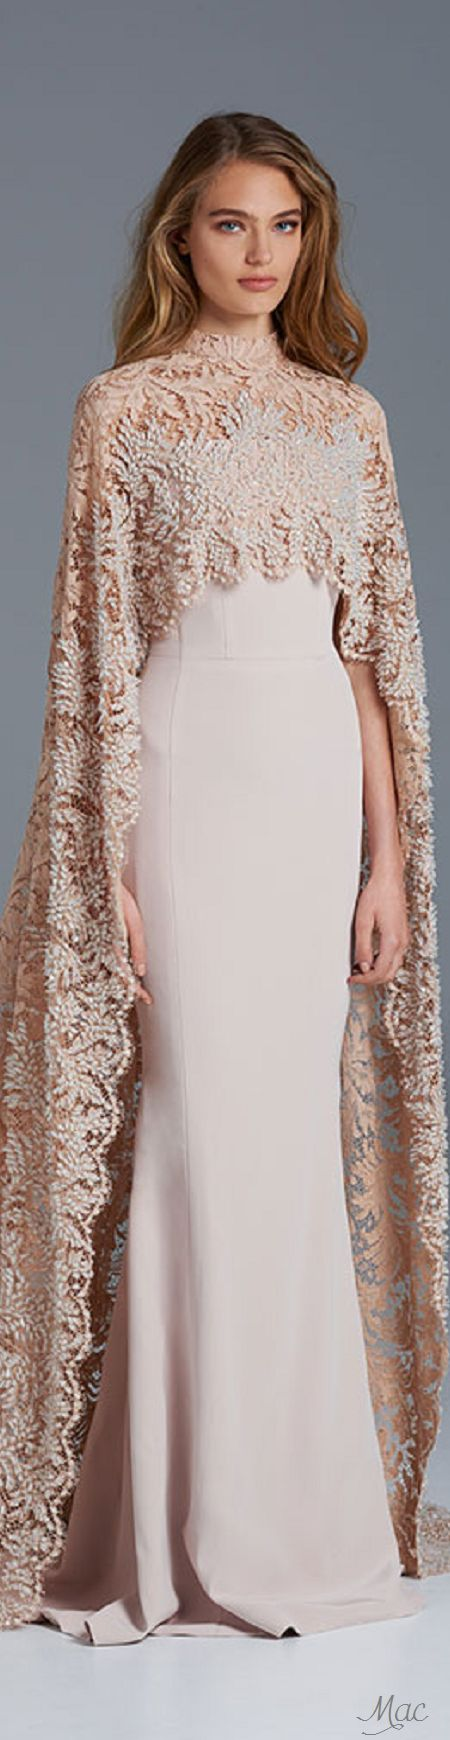 The gown boutique. Spring 2015 -2016 Couture Paolo Sebastian Blush pink Gown